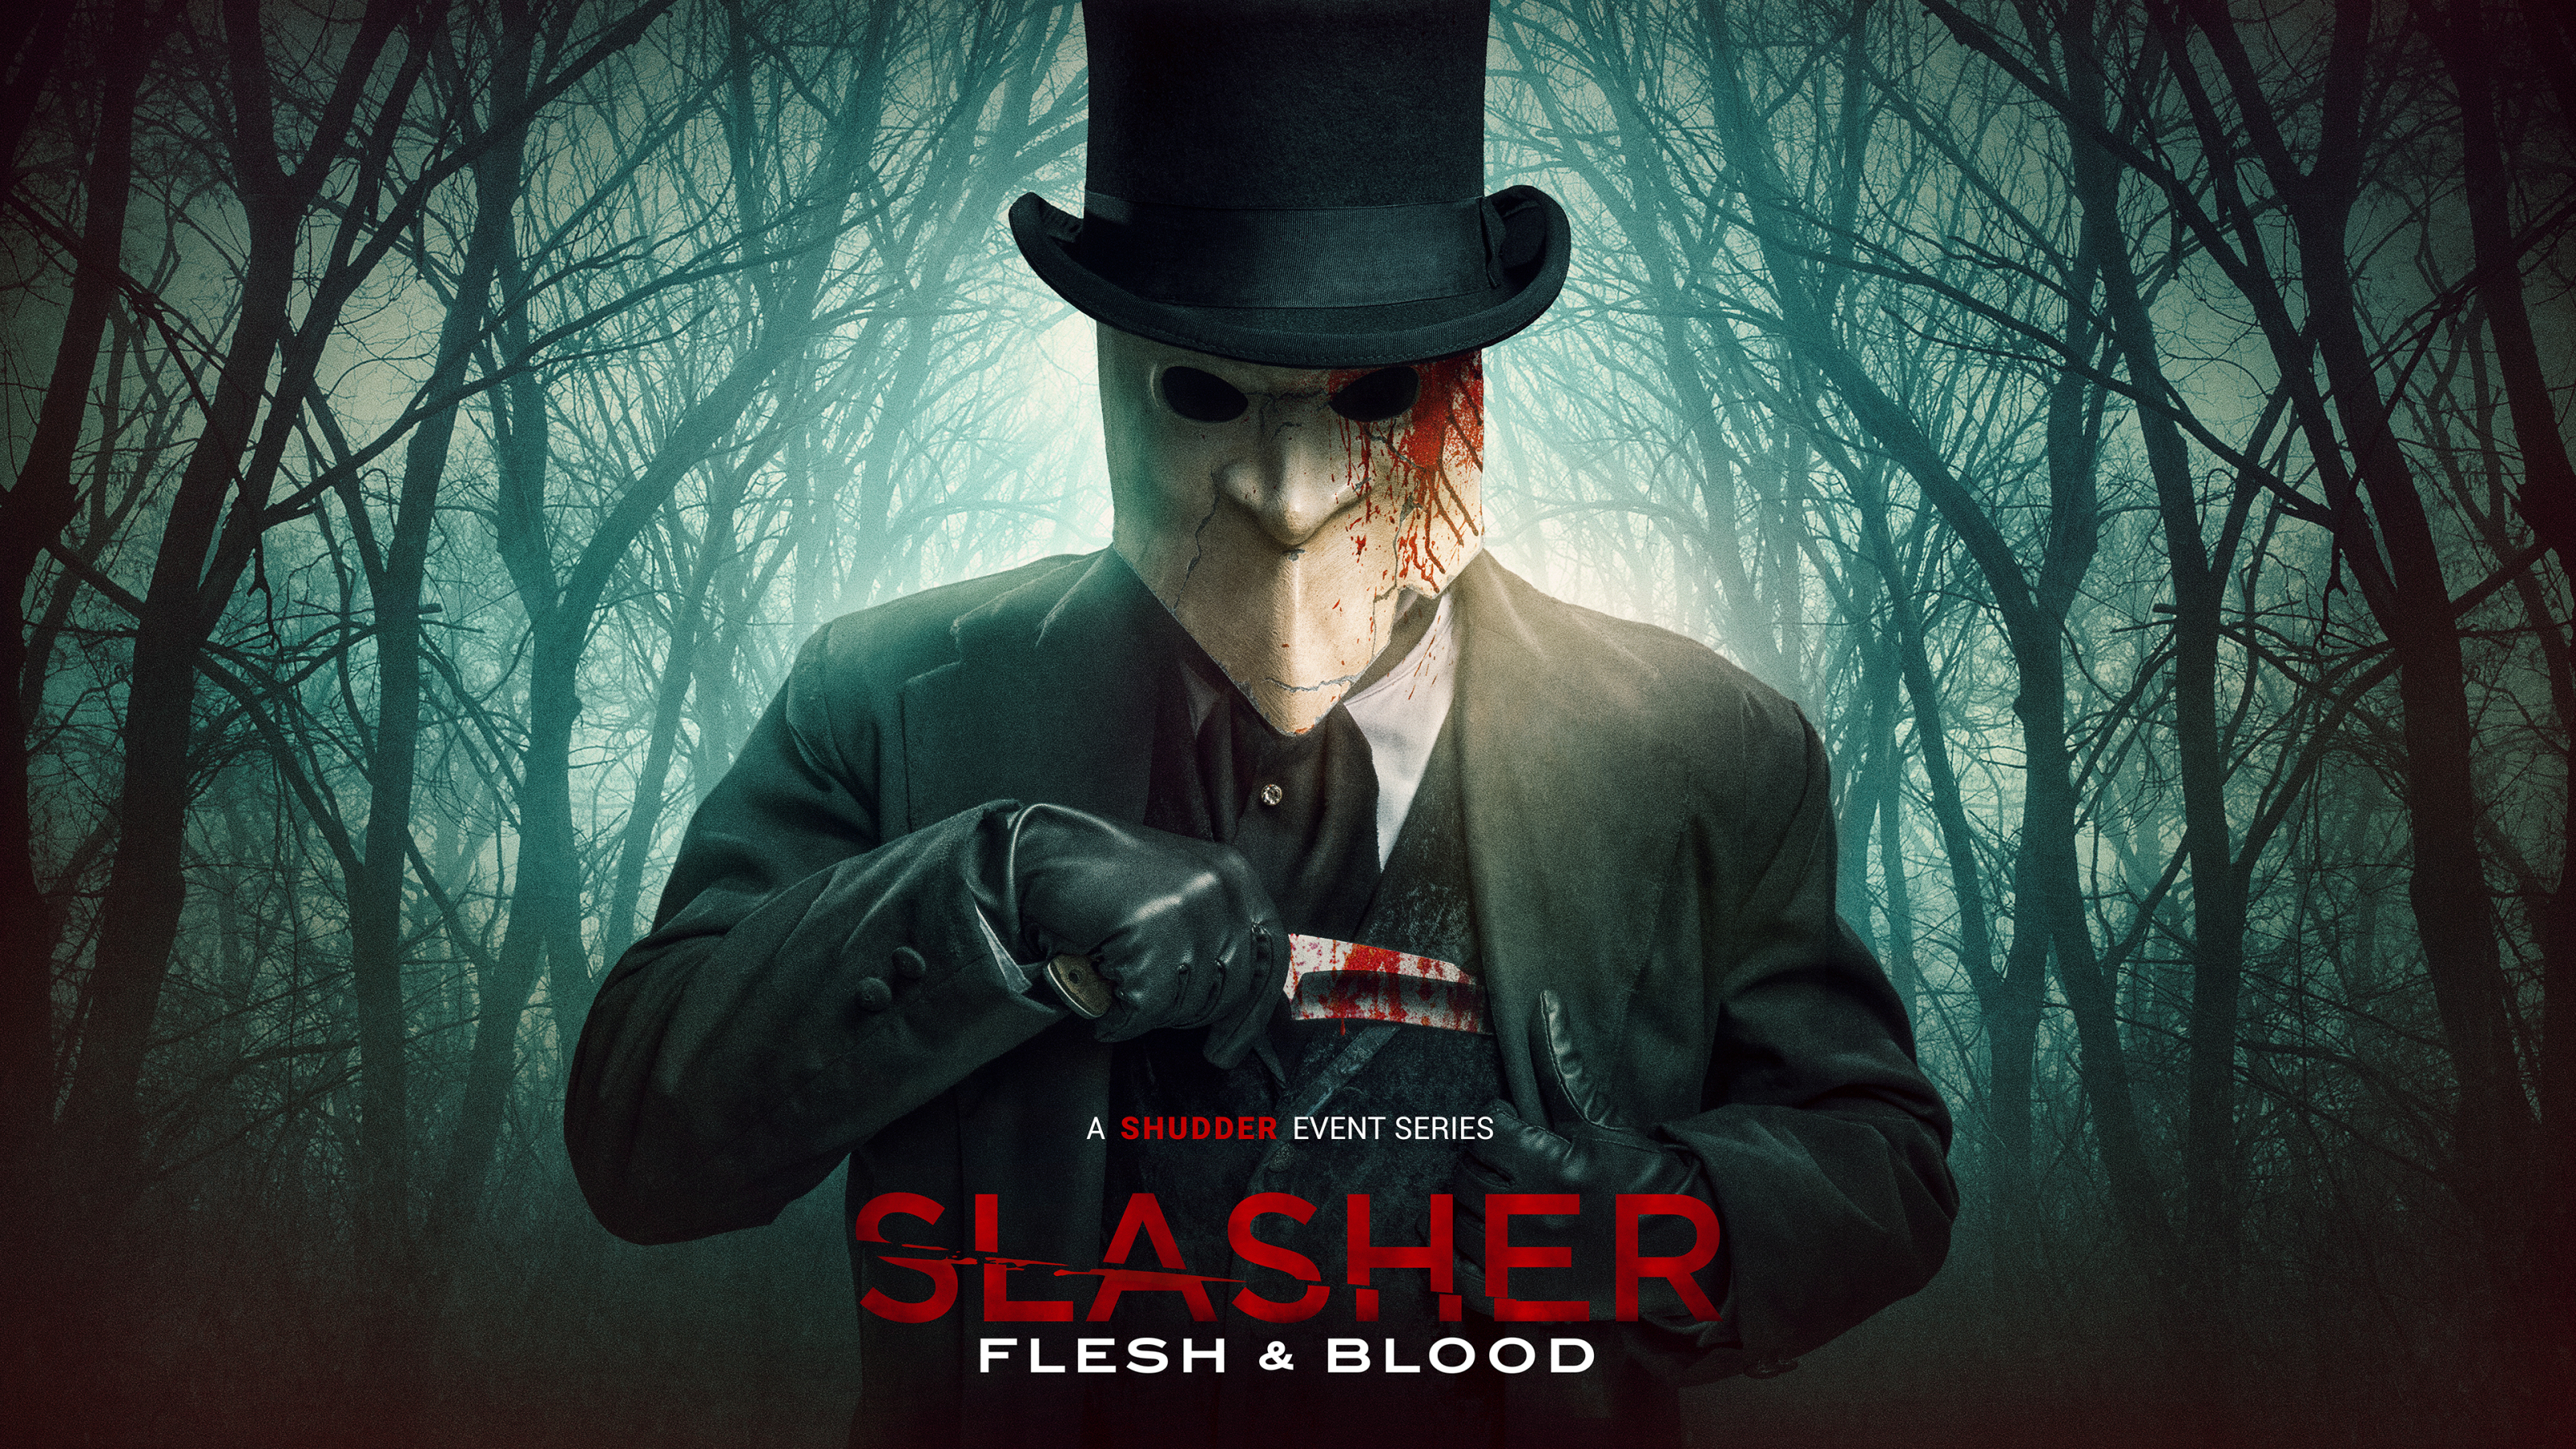 Slasher Season 4 release date, trailer, synopsis, cast, and more details